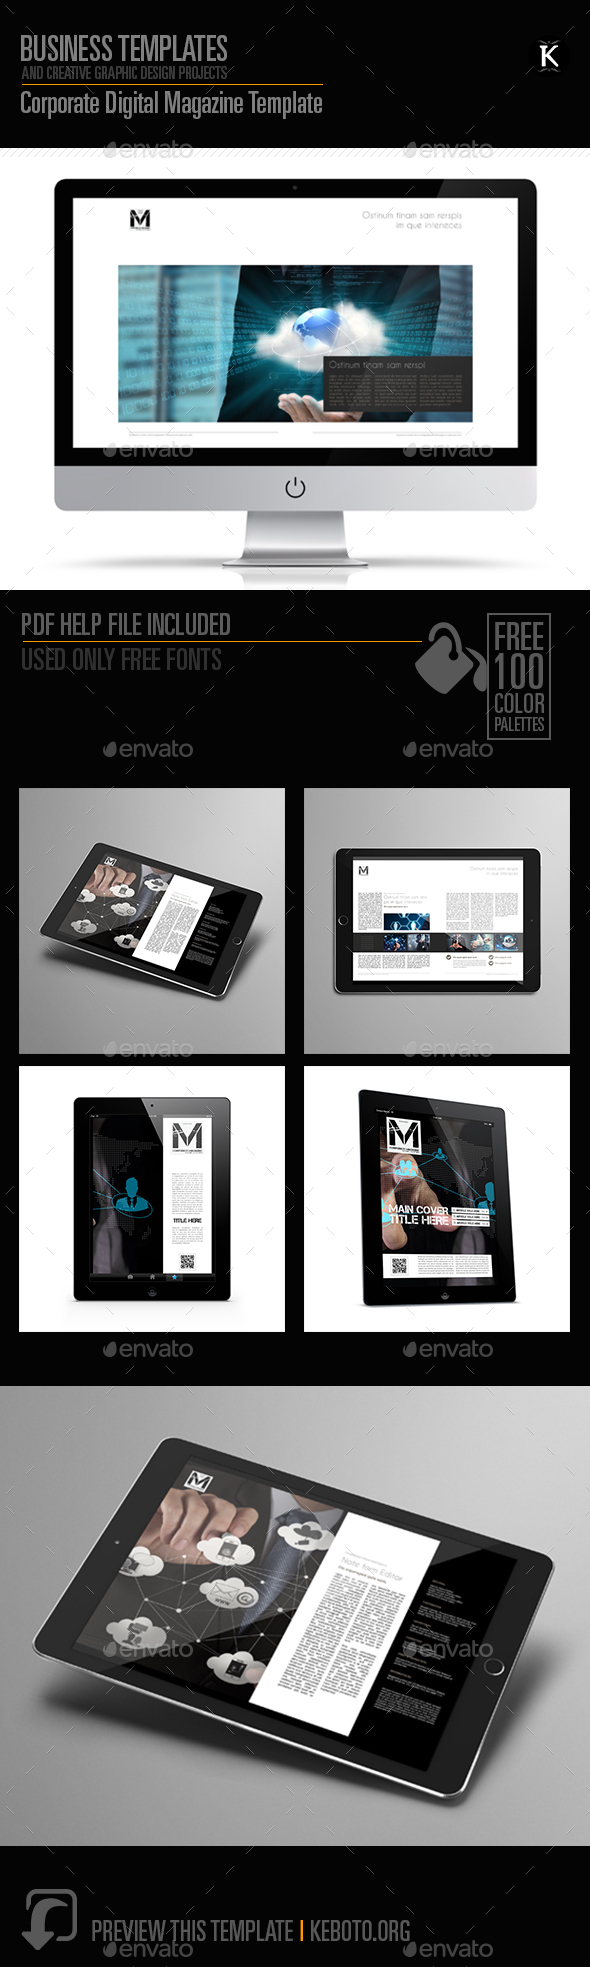 Corporate Digital Magazine Template - Digital Magazines ePublishing